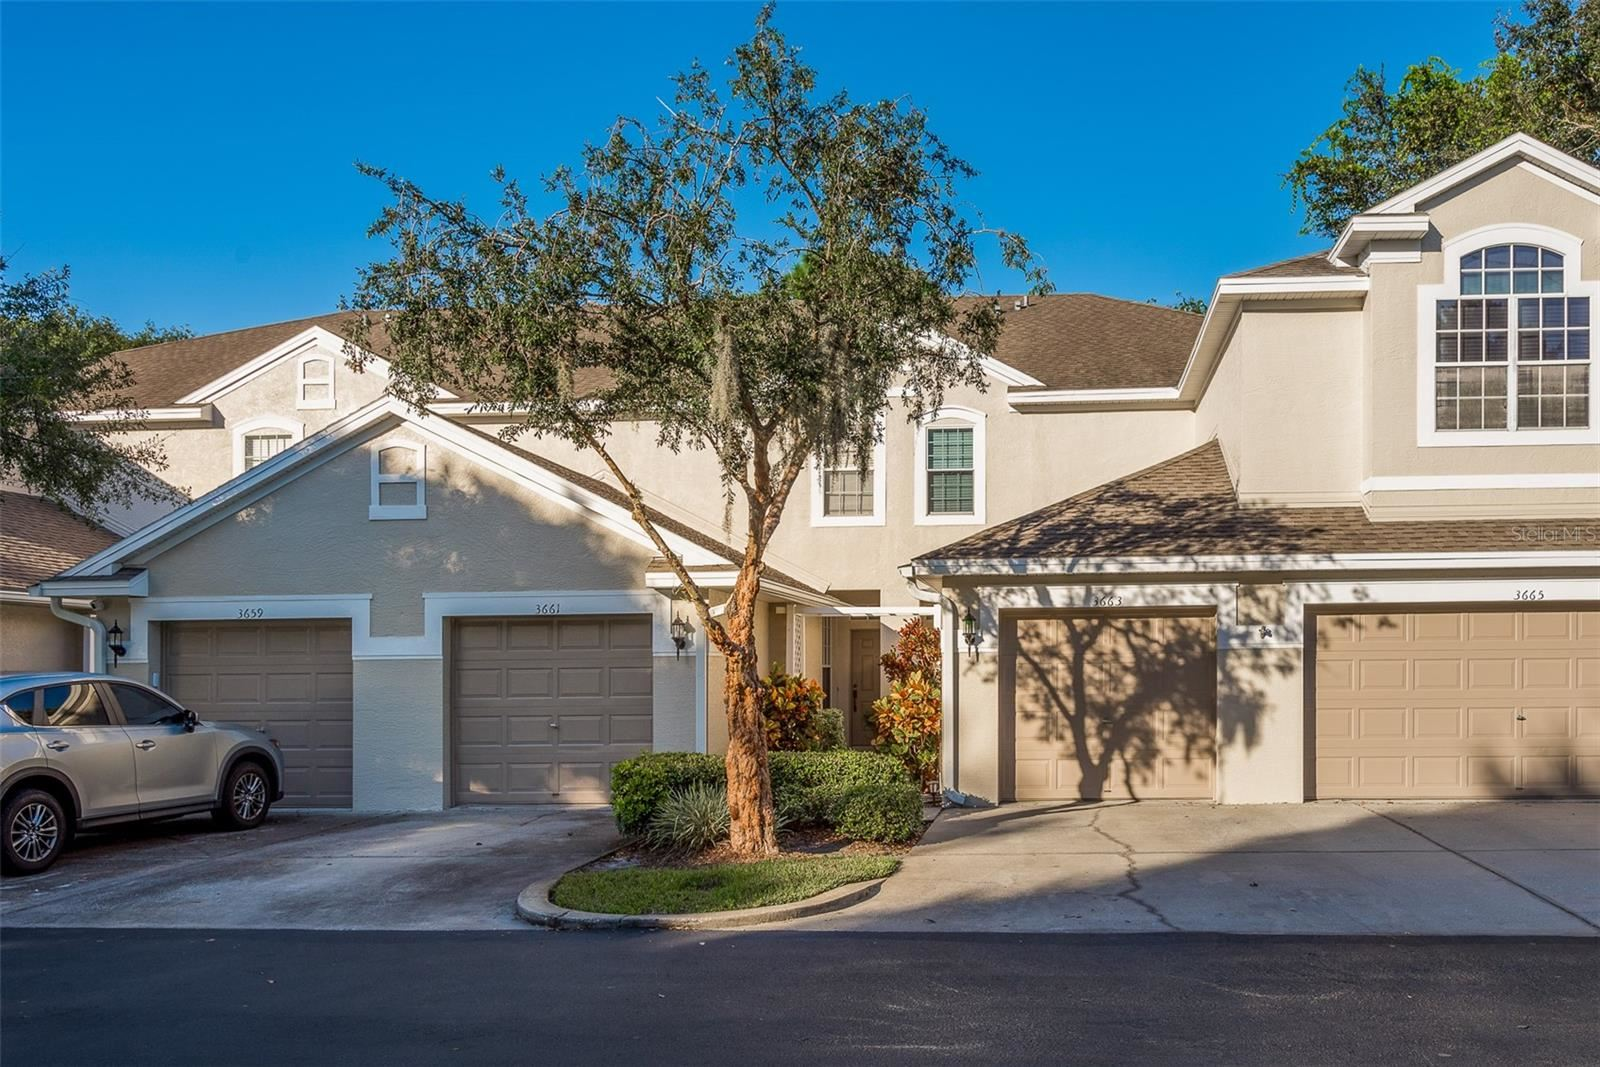 3661 COUNTRY POINTE PLACE, Palm Harbor, FL 34684 - MLS#: U8140020